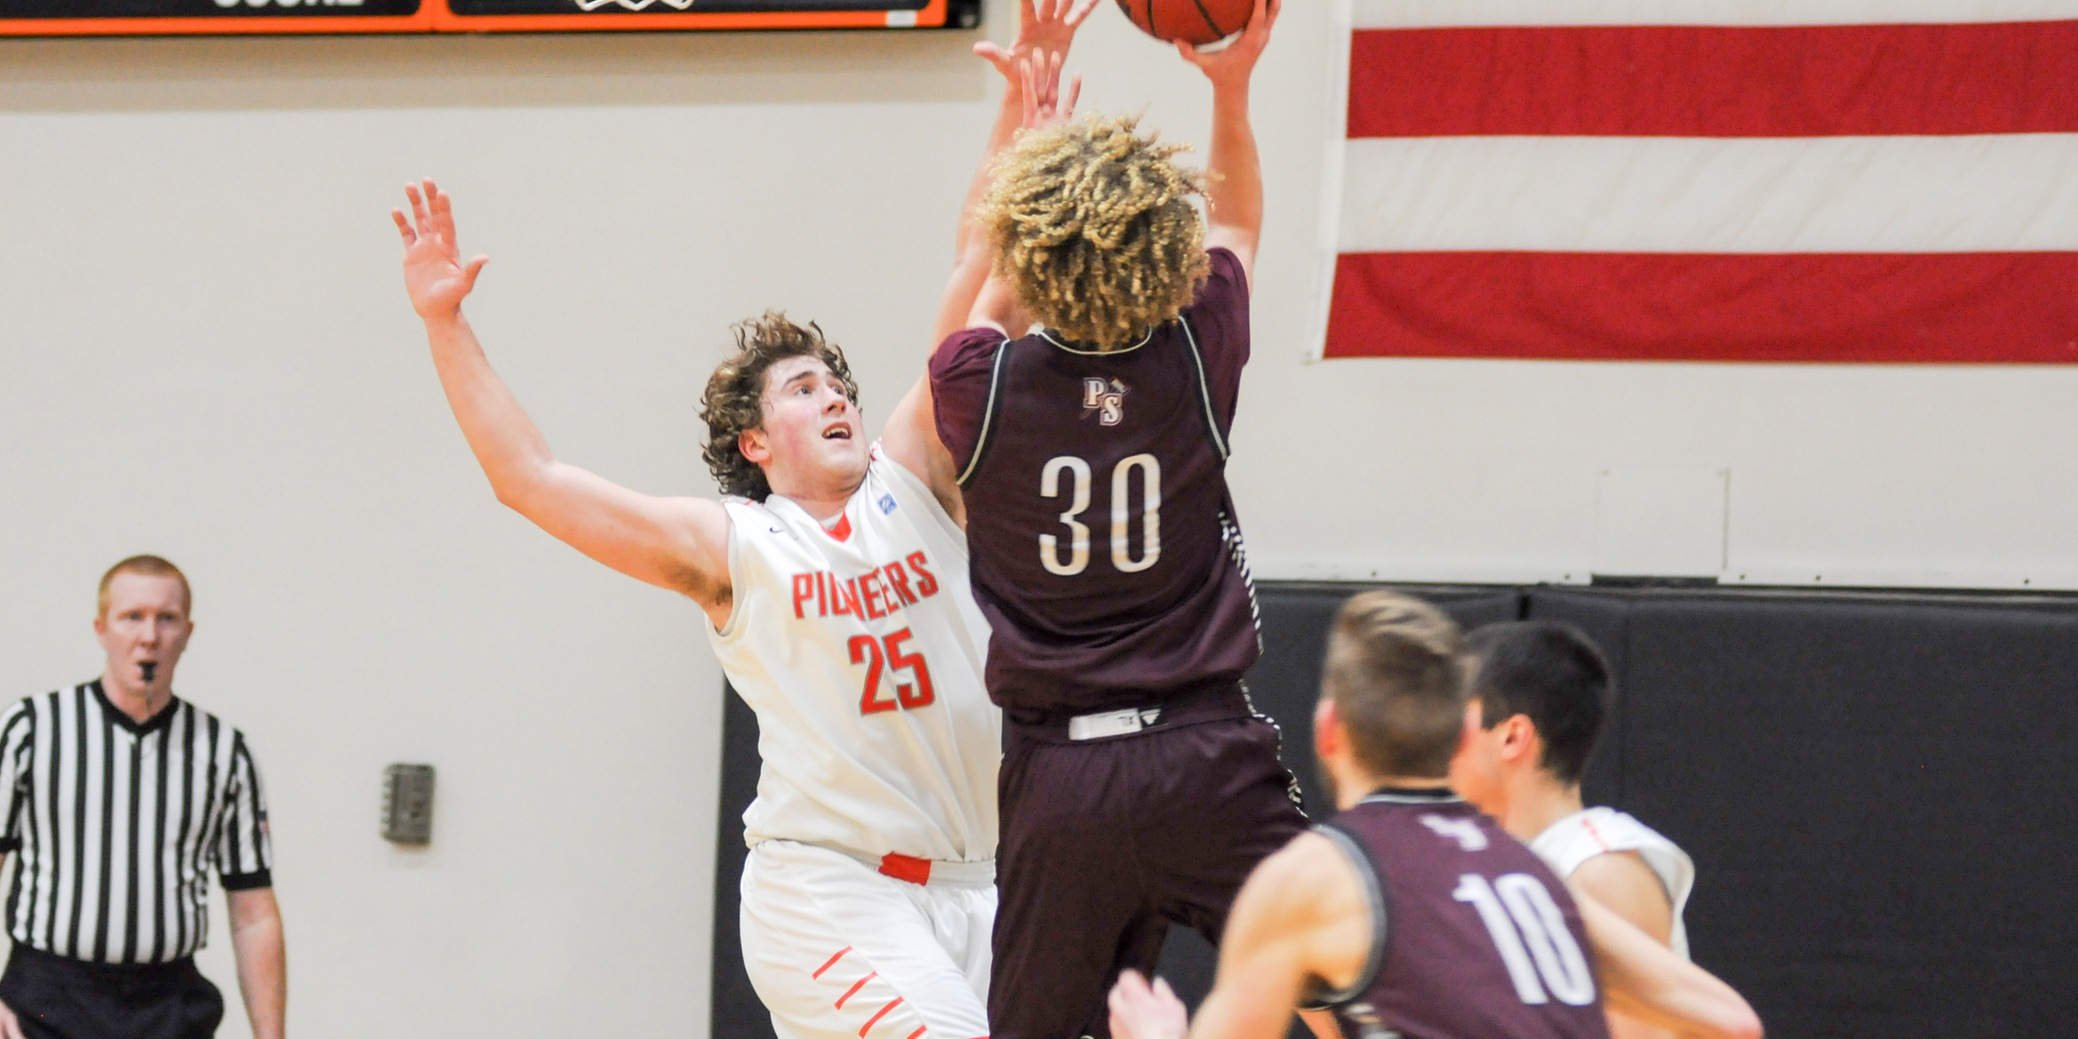 Lewis & Clark's first-half lead evaporates in home loss